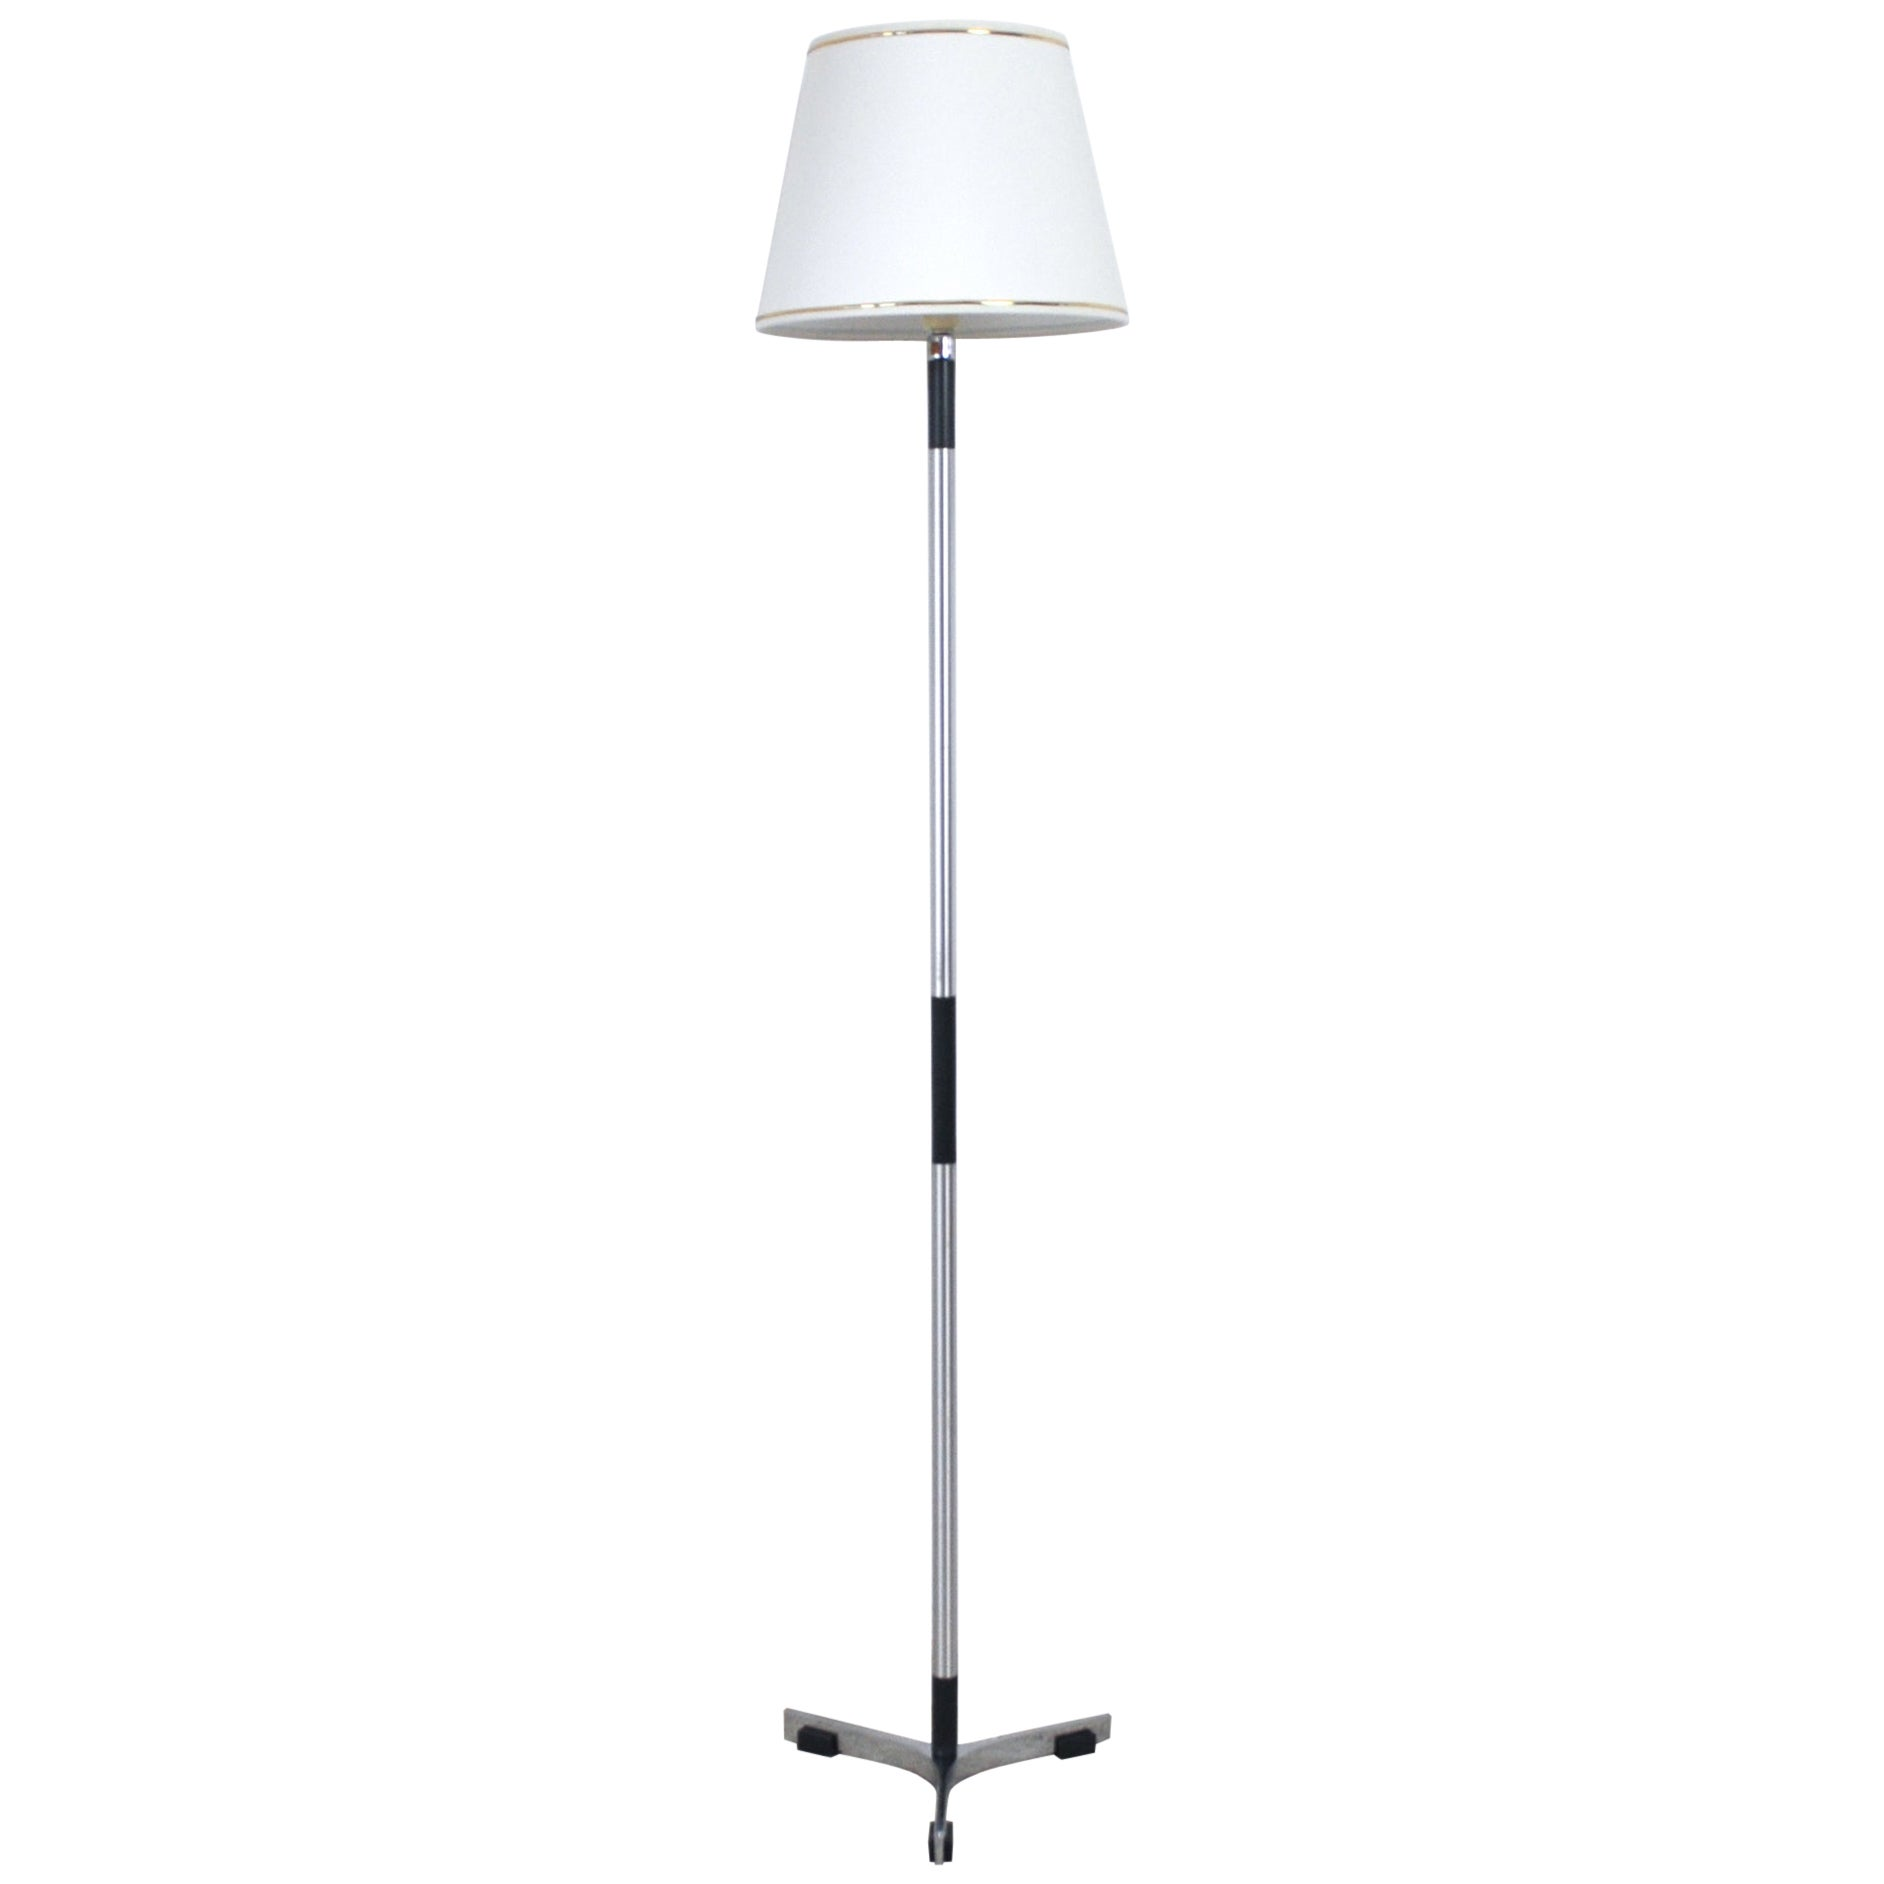 Monolit Floor Lamp by Jo Hammerborg for Fog & Mørup, 1960s